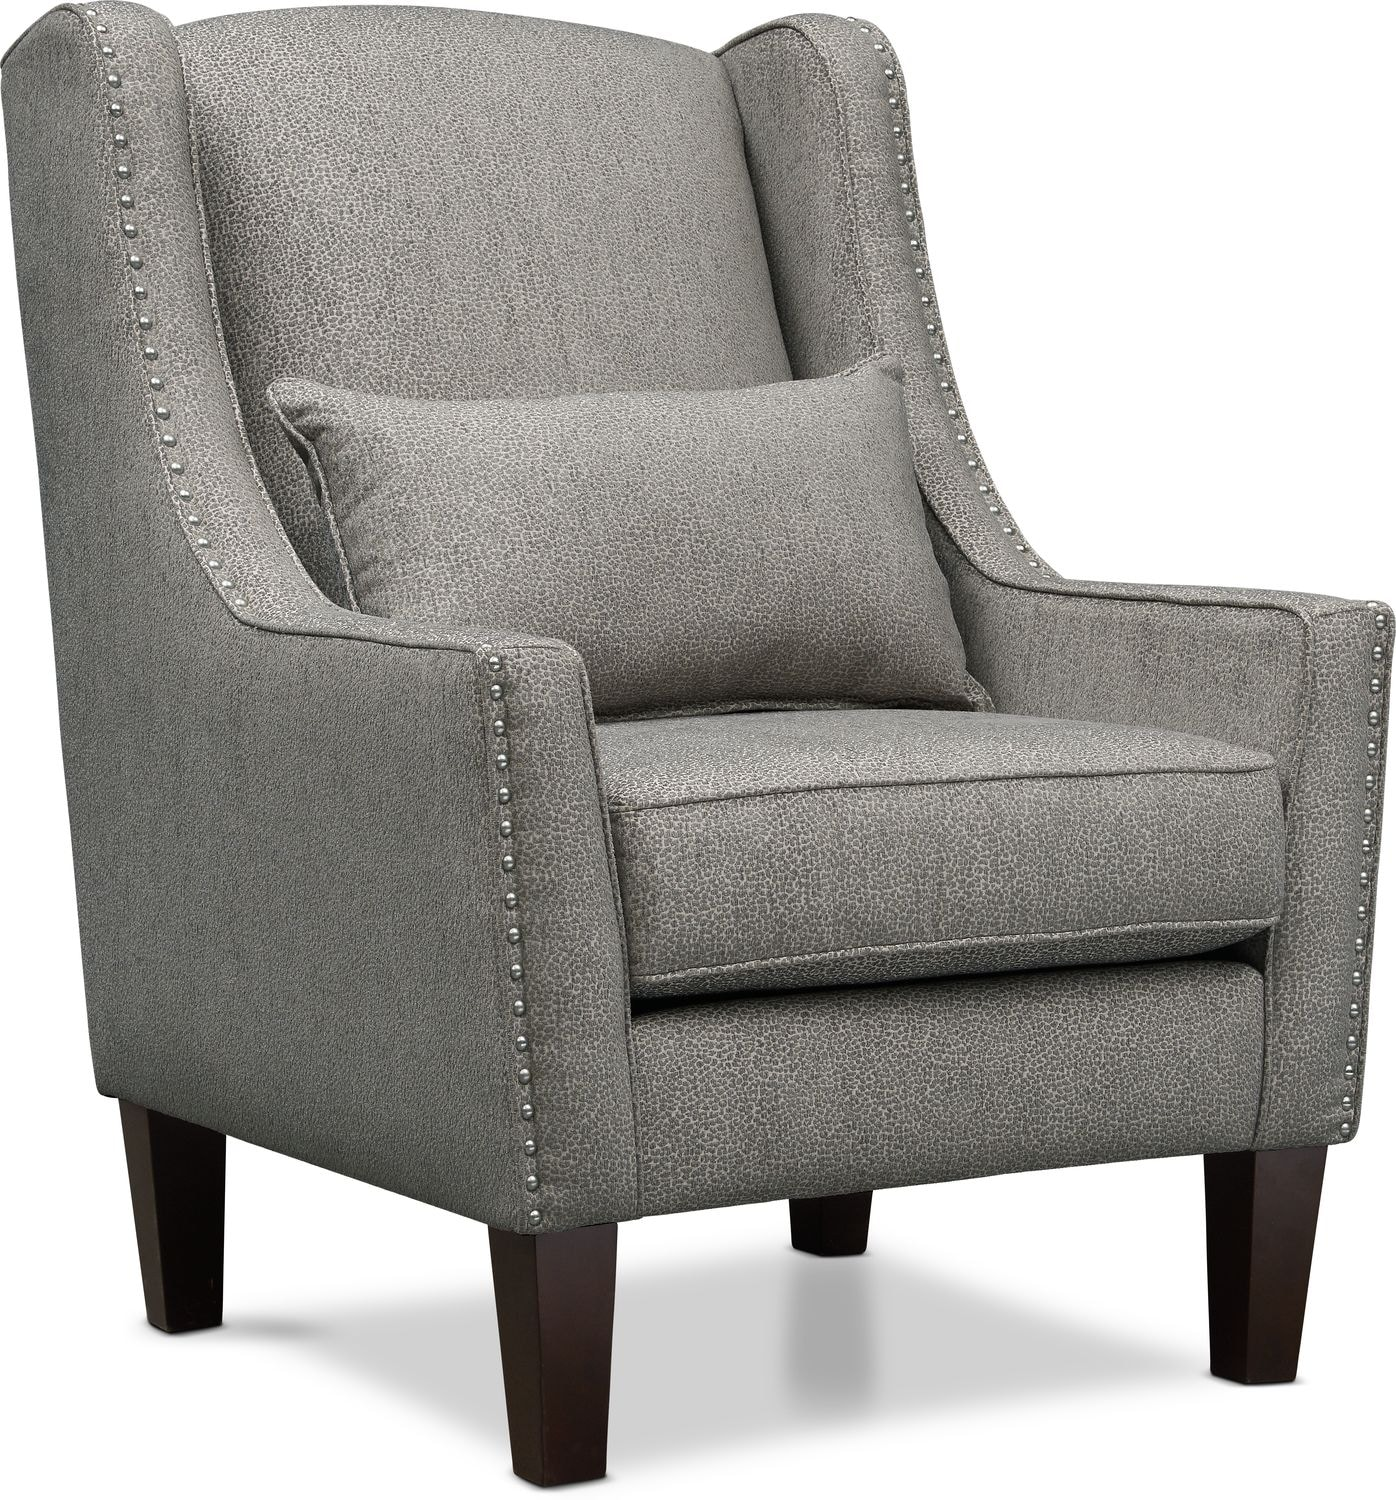 mesmerizing living room accent chair | Roxie Accent Chair | American Signature Furniture